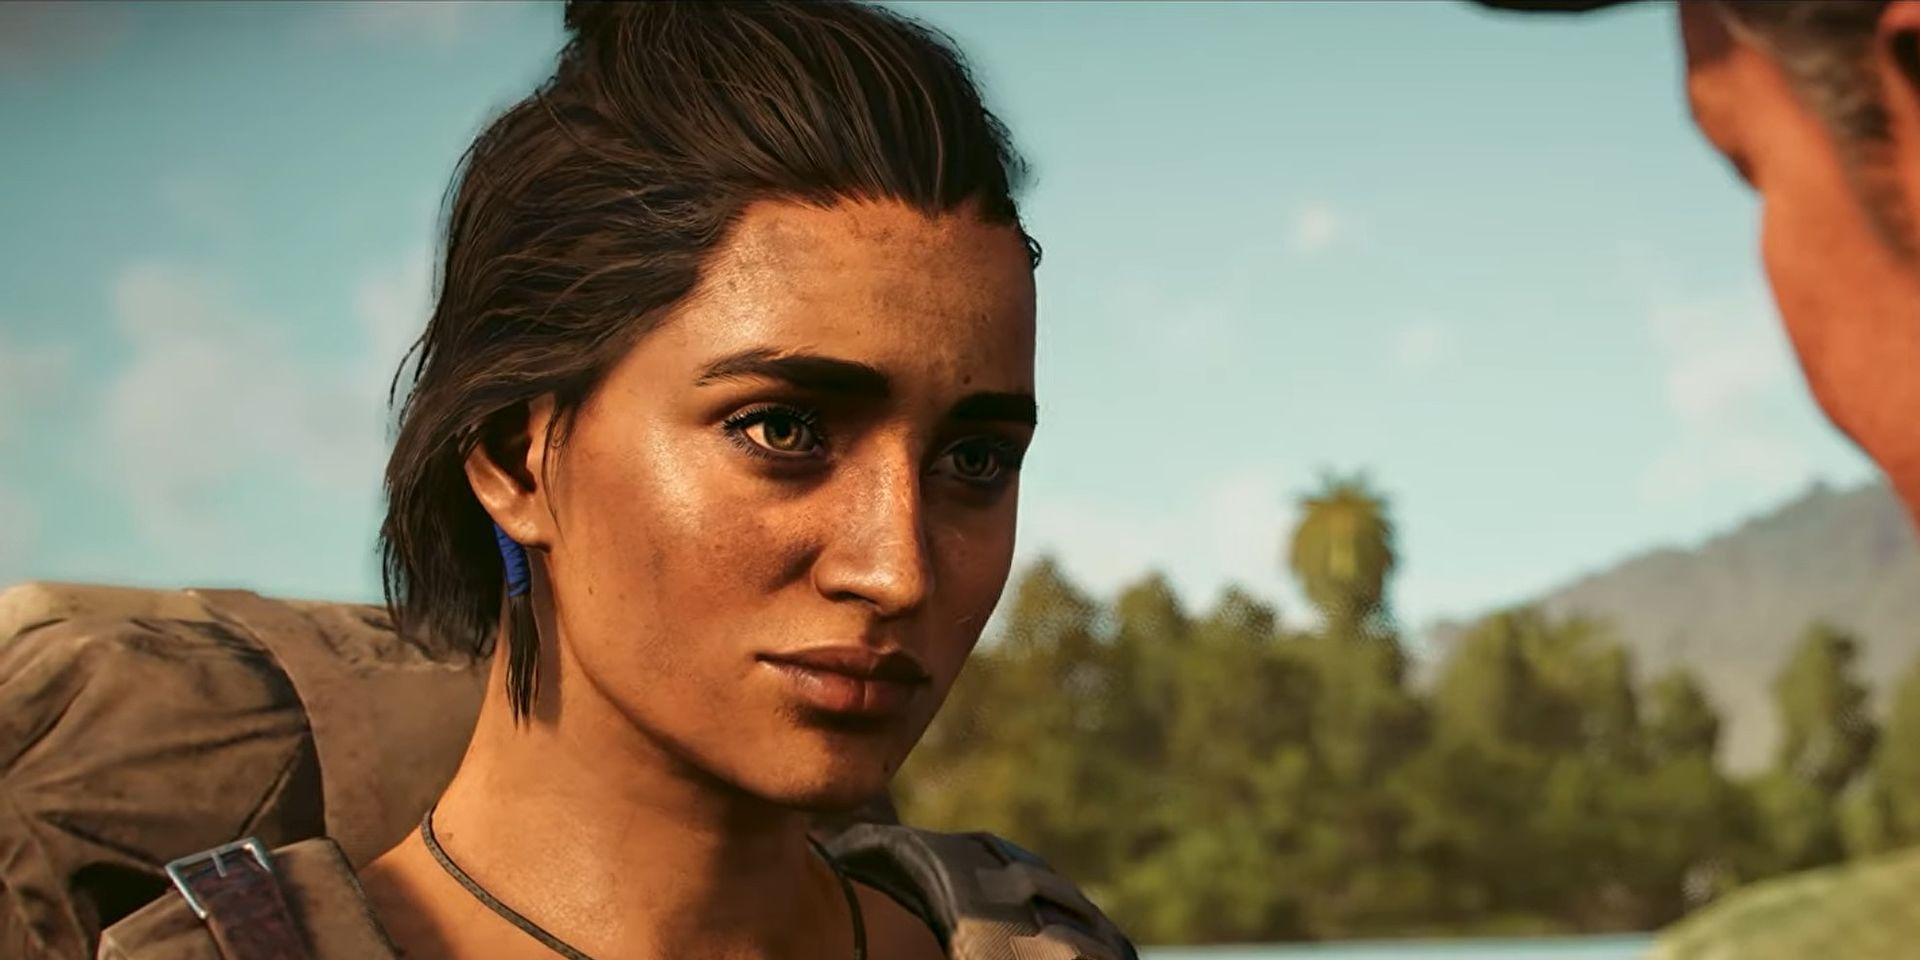 Far Cry 6: Why A Voiced Protagonist Is A Better Choice